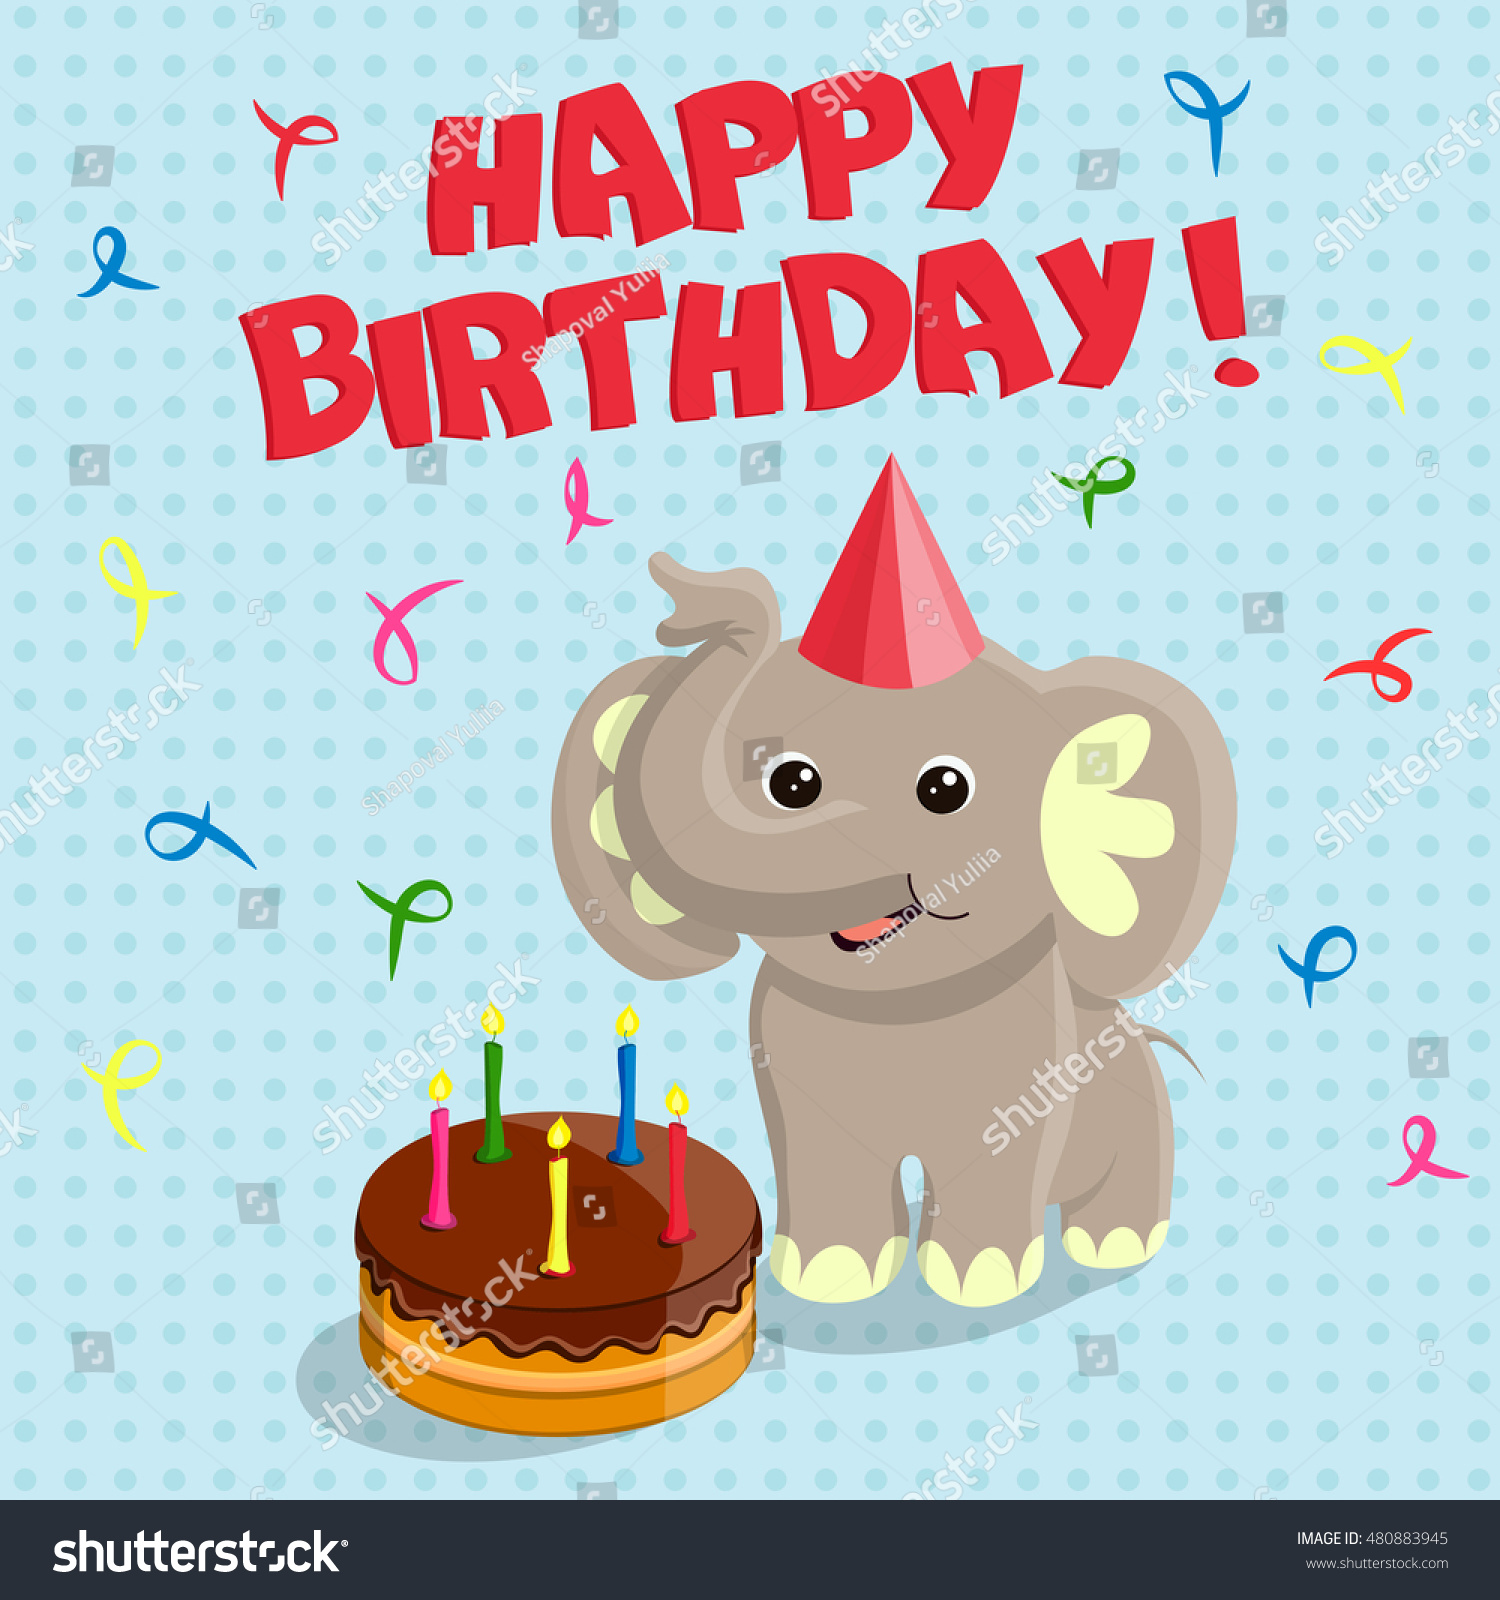 Happy birthday greeting card funny cute stock vector 480883945 happy birthday greeting card with the funny cute elephant and the chocolate cake vector illustration kristyandbryce Image collections